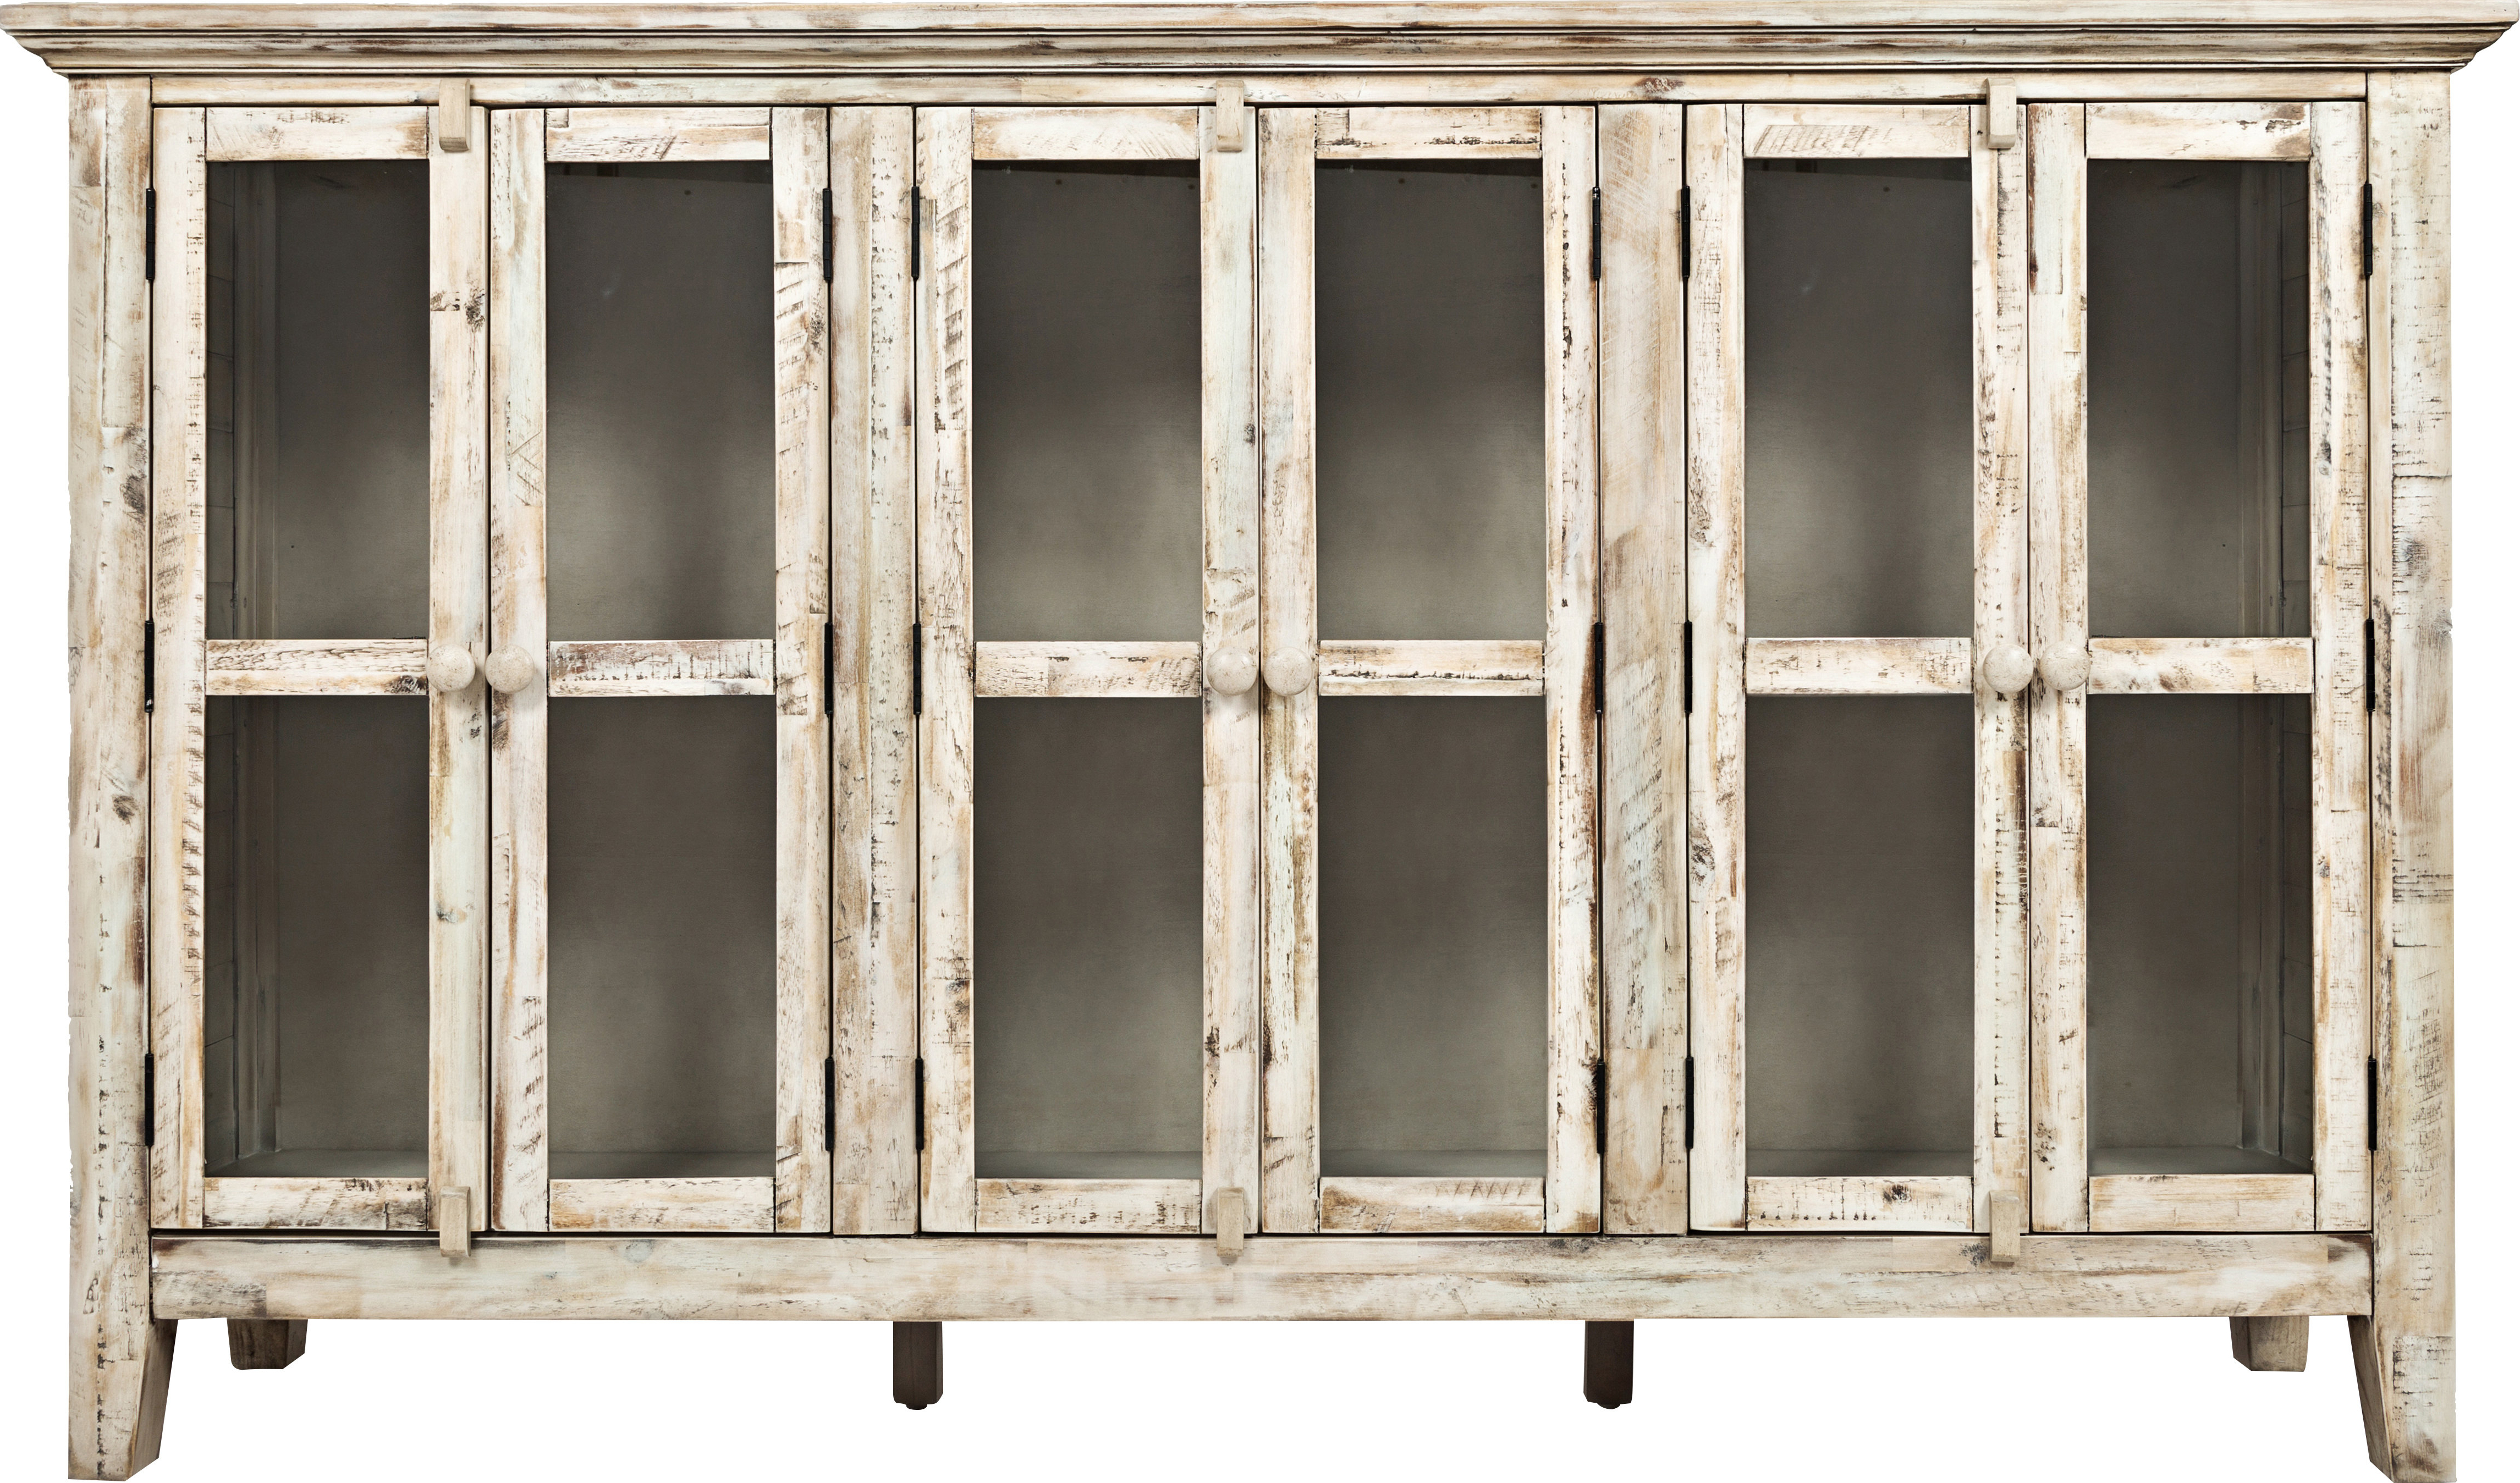 Farmhouse & Rustic Sideboards & Buffets | Birch Lane With Kattie 4 Door Cabinets (View 12 of 20)